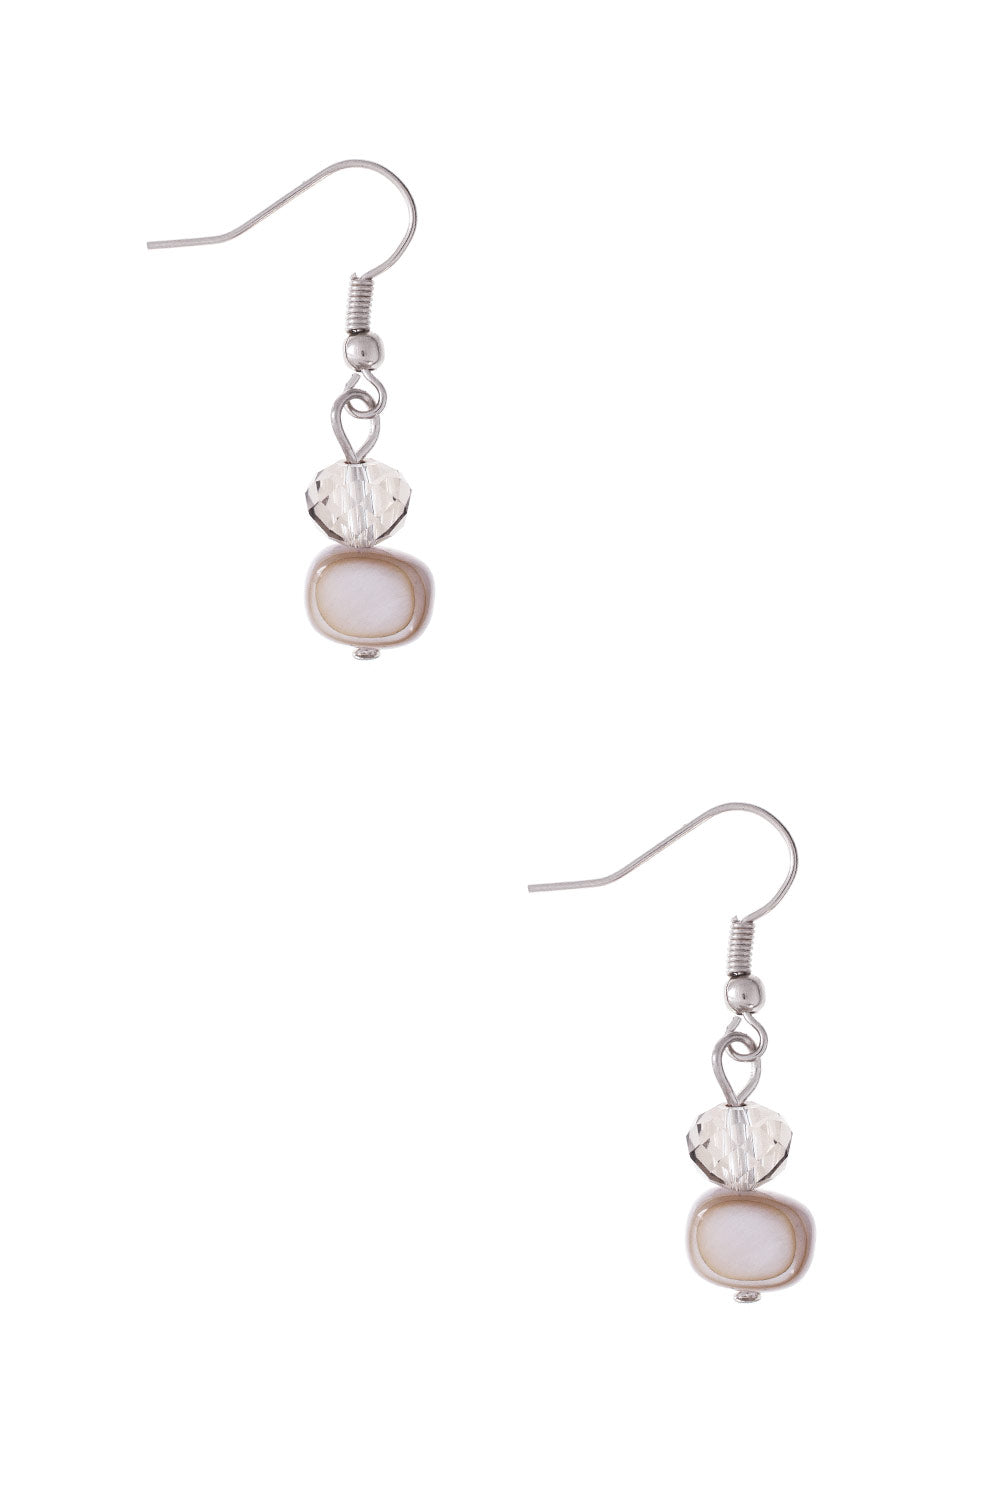 Type 2 Skipping Stones Earrings